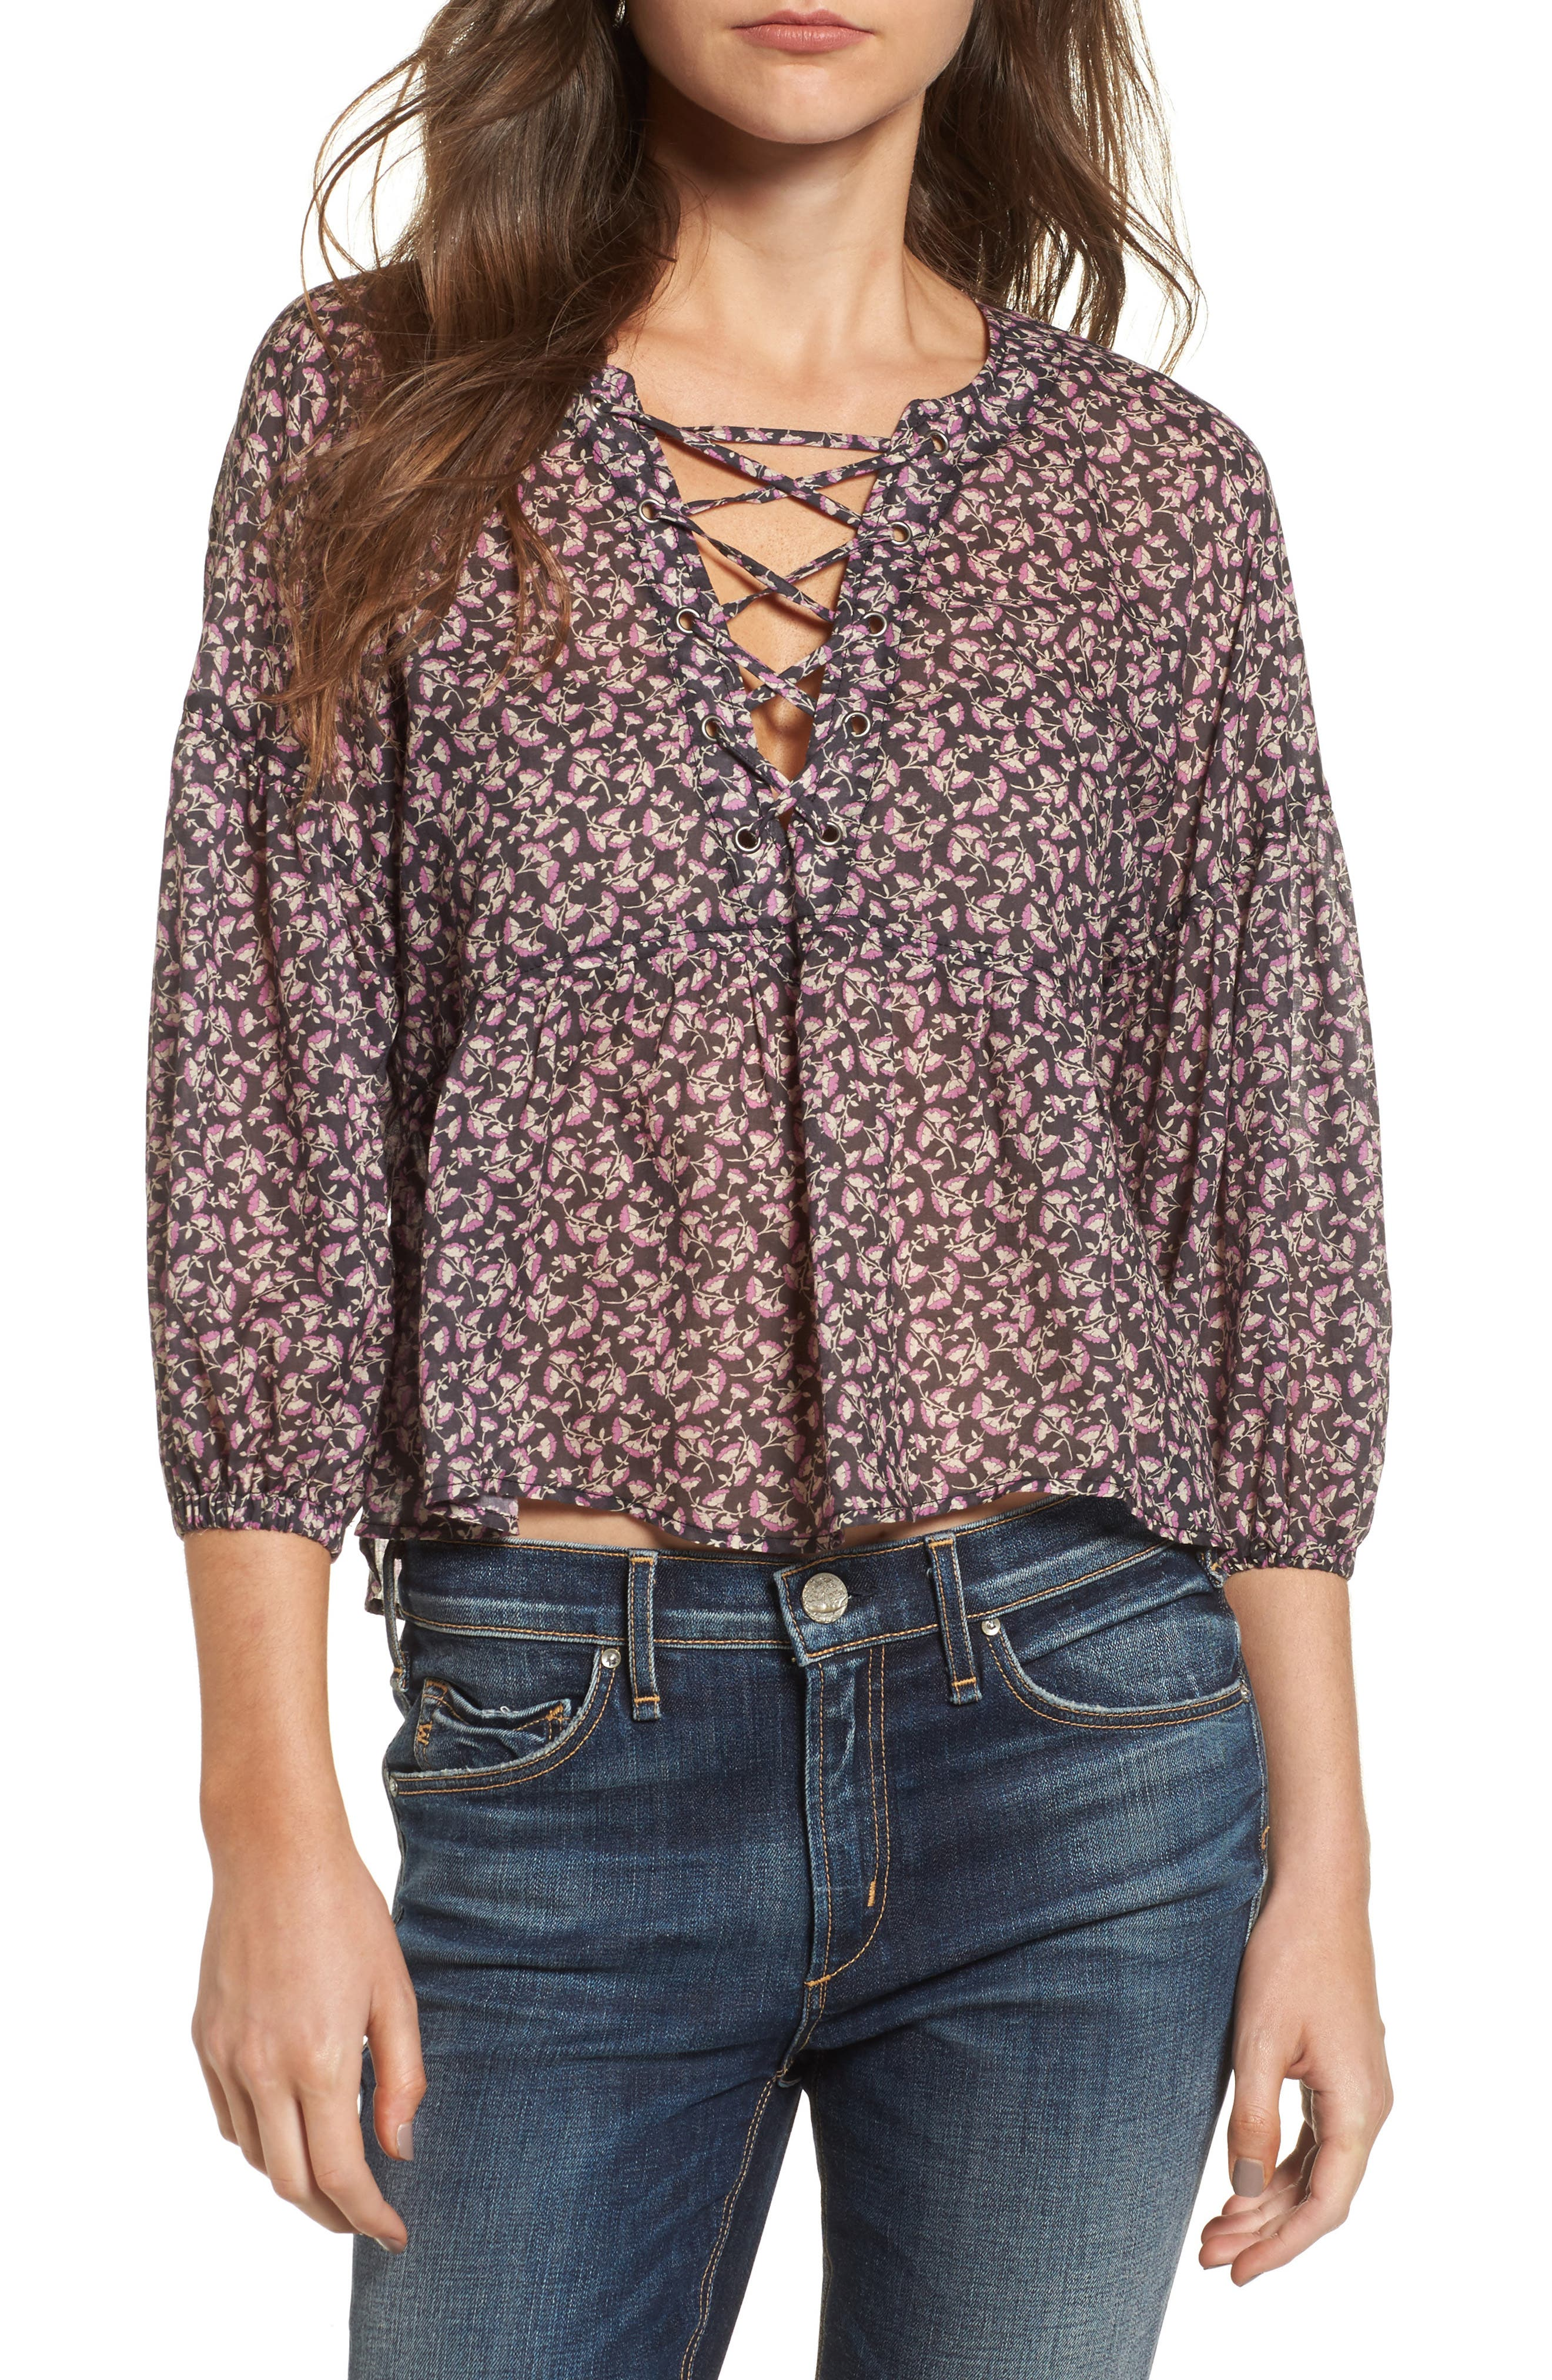 McGuire Lalo Woven Top